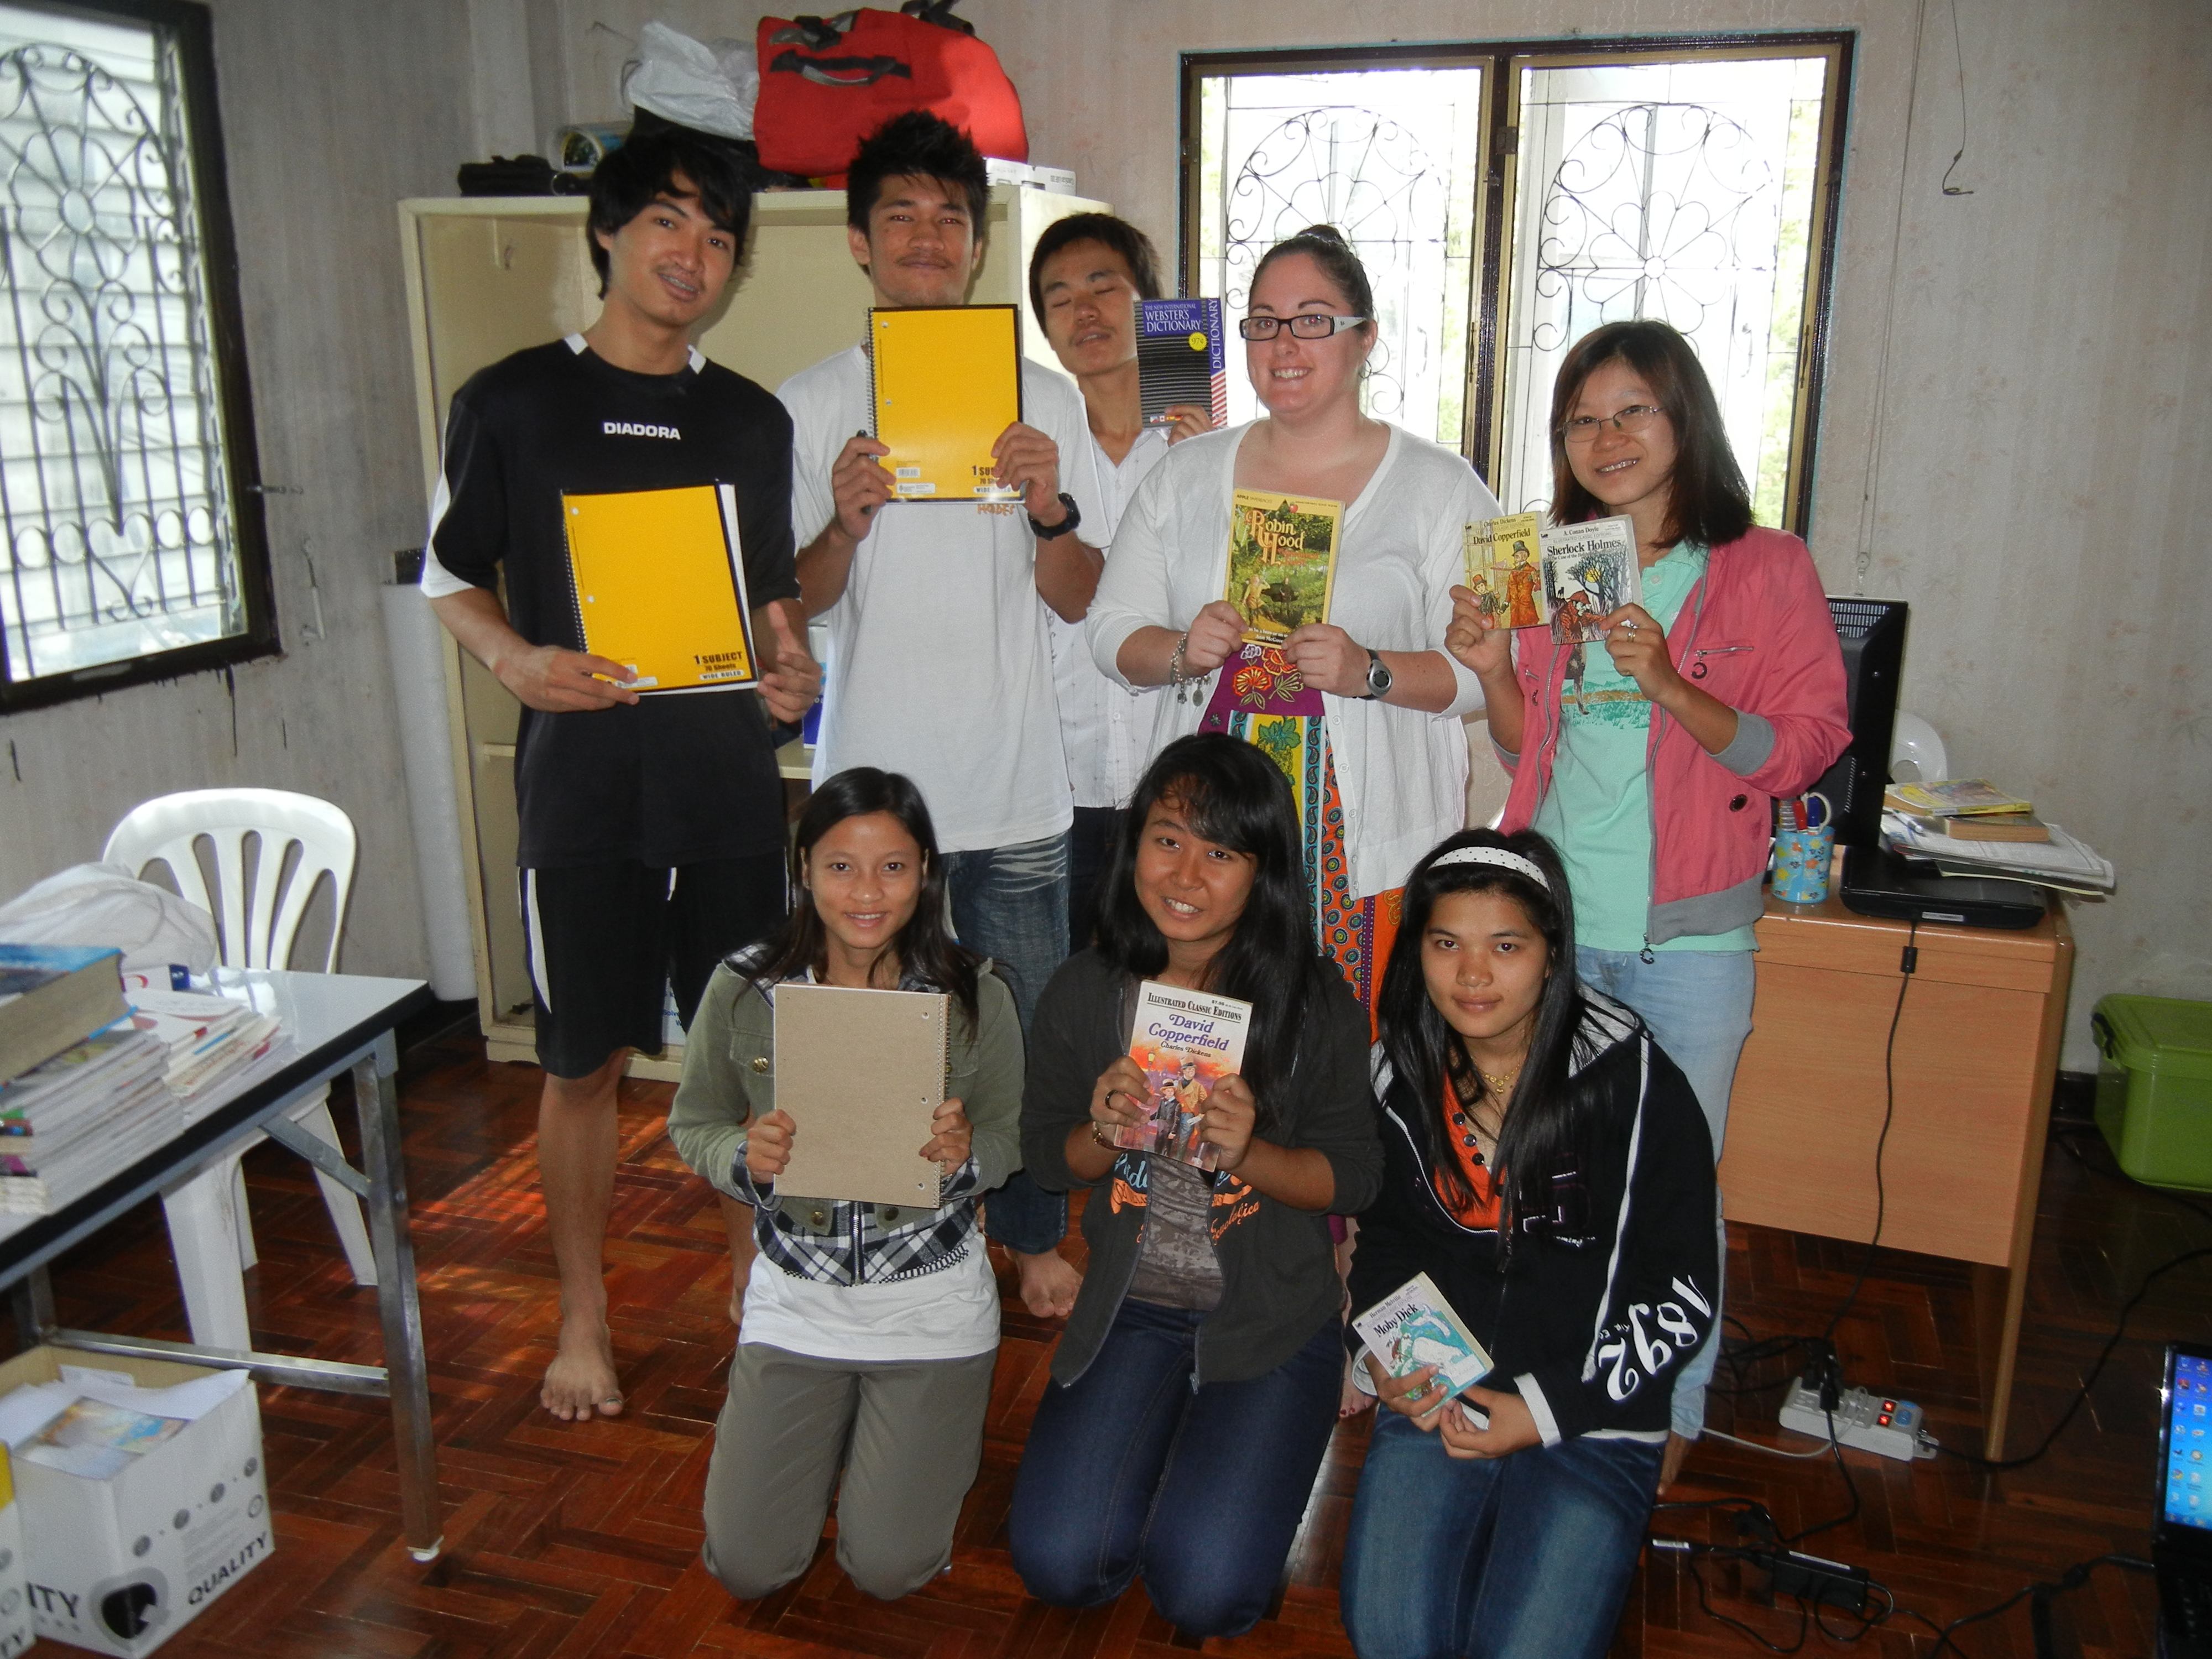 Crystal handing out school supplies to Burmese students in Thailand.